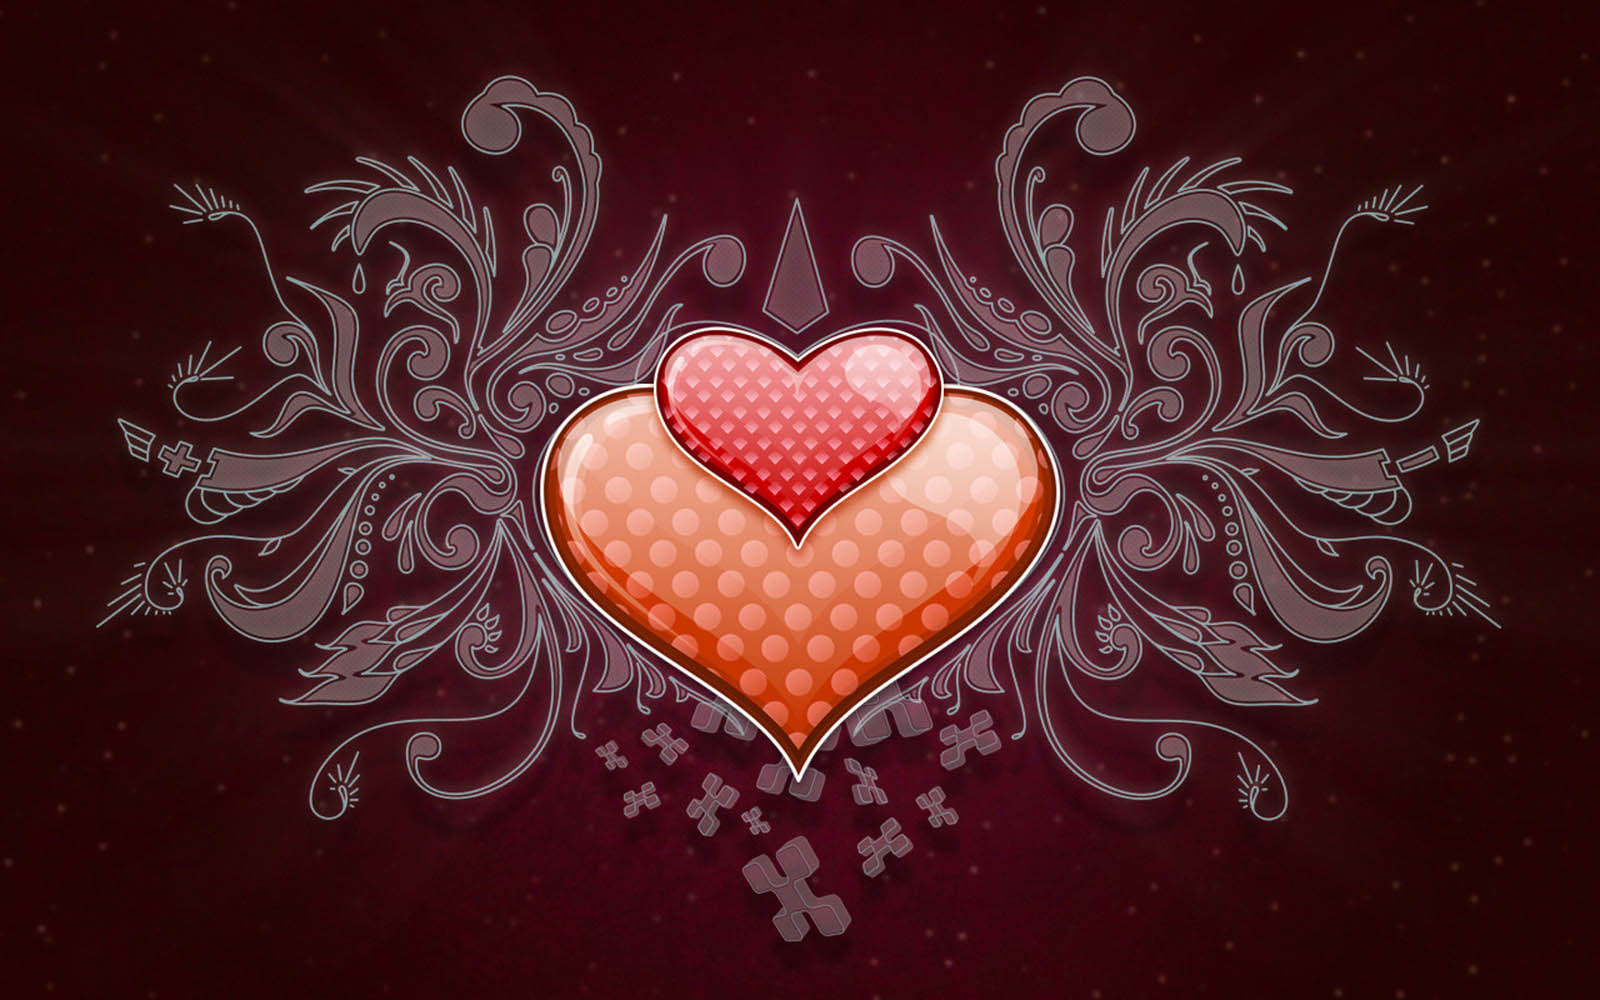 Love Symbols Wallpapers Free Download